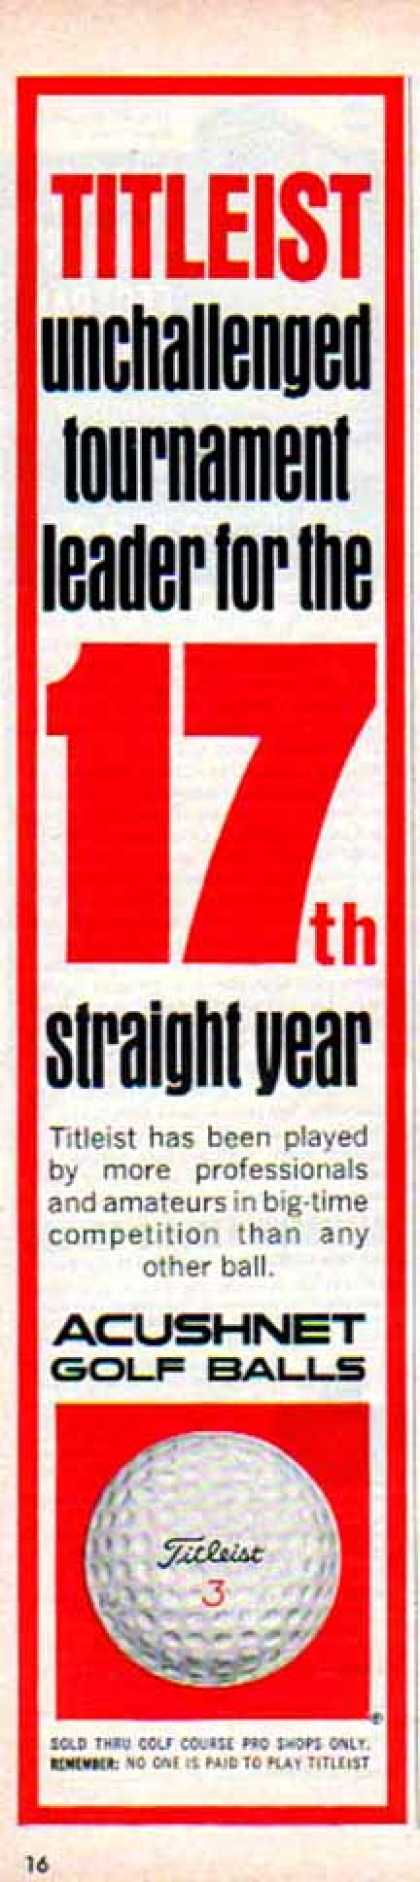 Titleist Acushnet Golf Ball – 17th straight year (1966)